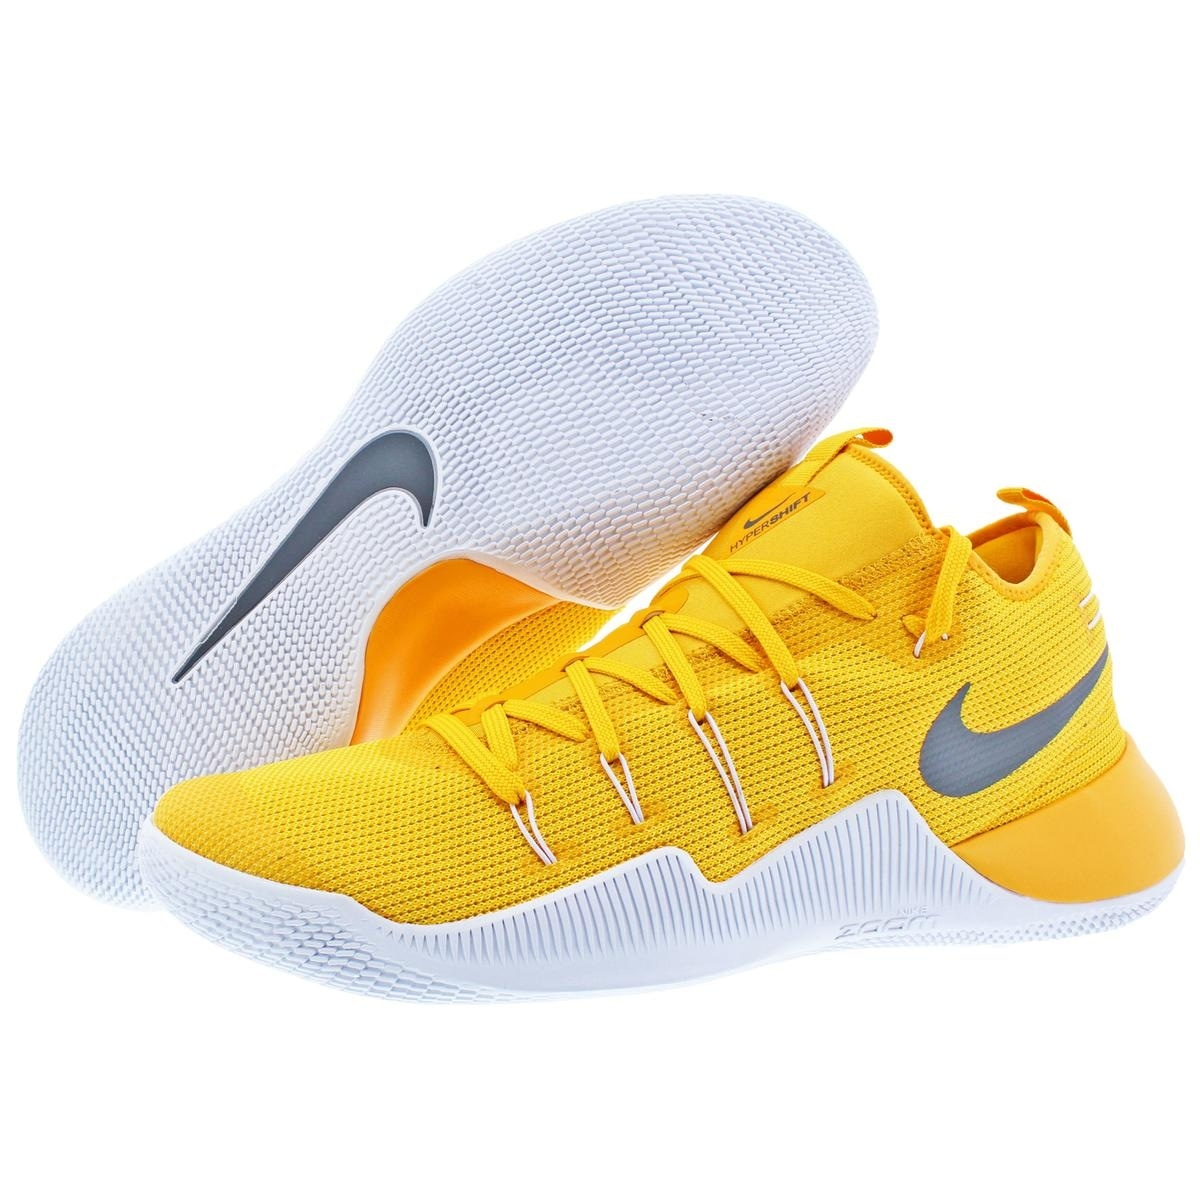 5094252e78a6 Shop Nike Mens Hypershift TB PROMO Basketball Shoes Mid Top Nike Zoom -  Free Shipping On Orders Over  45 - Overstock - 21942603